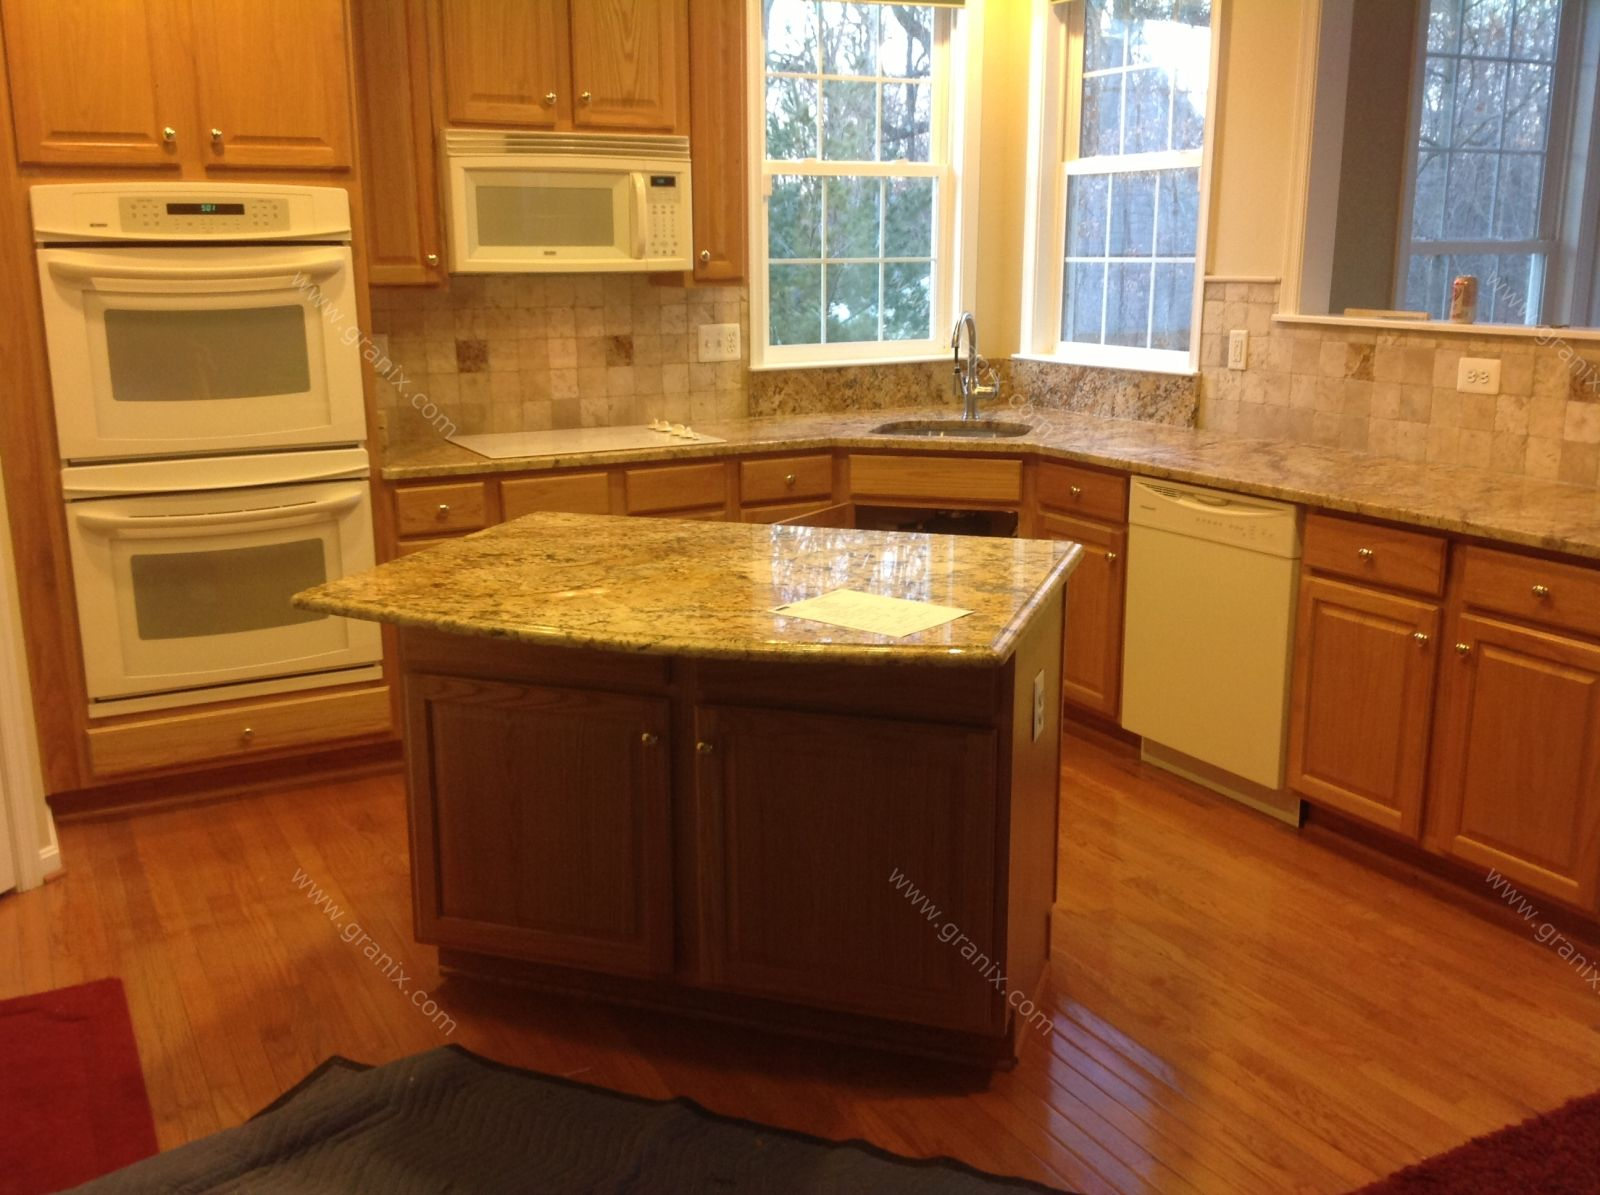 Solarius granite pictures google search samples for remodel pinterest granite granite Kitchen countertop ideas